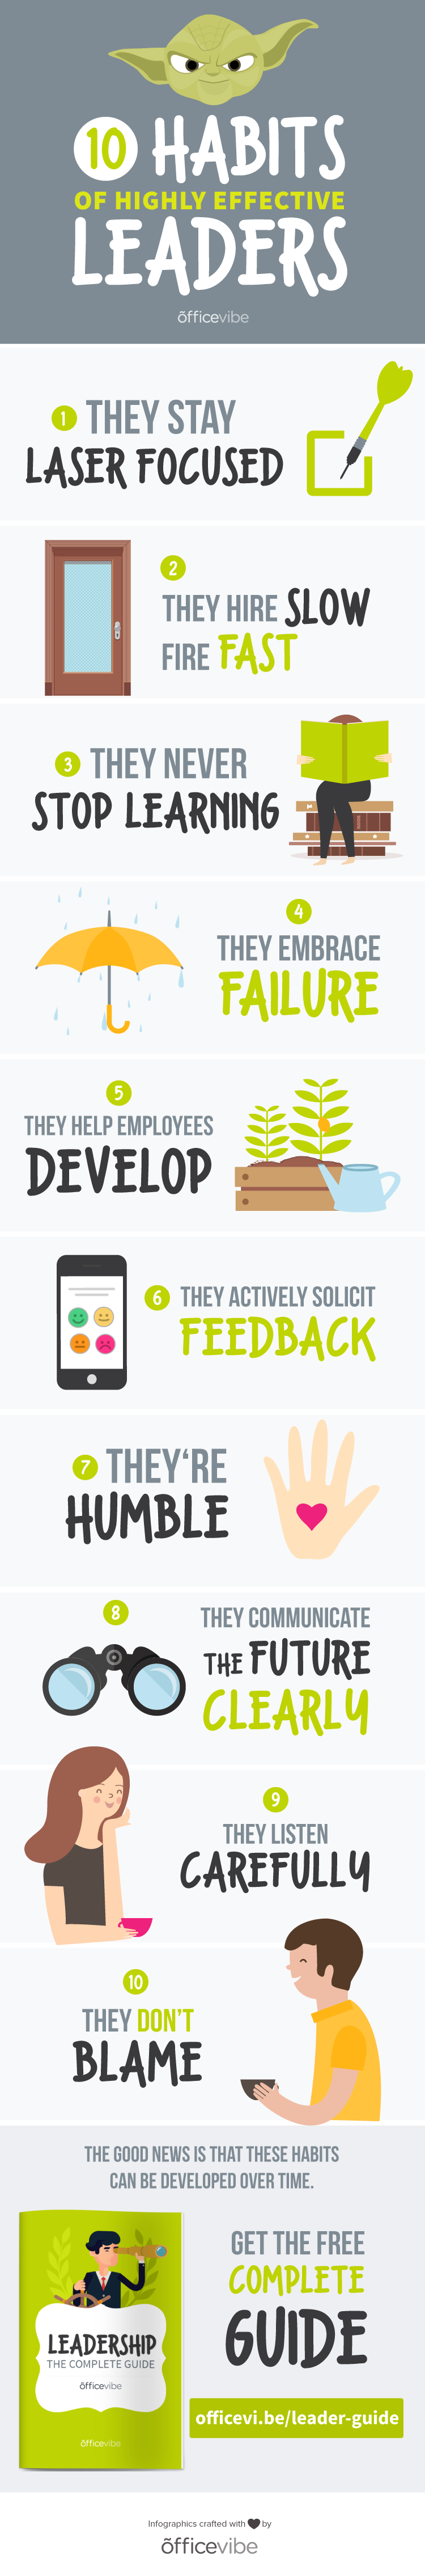 infographic-habits-effective-leaders